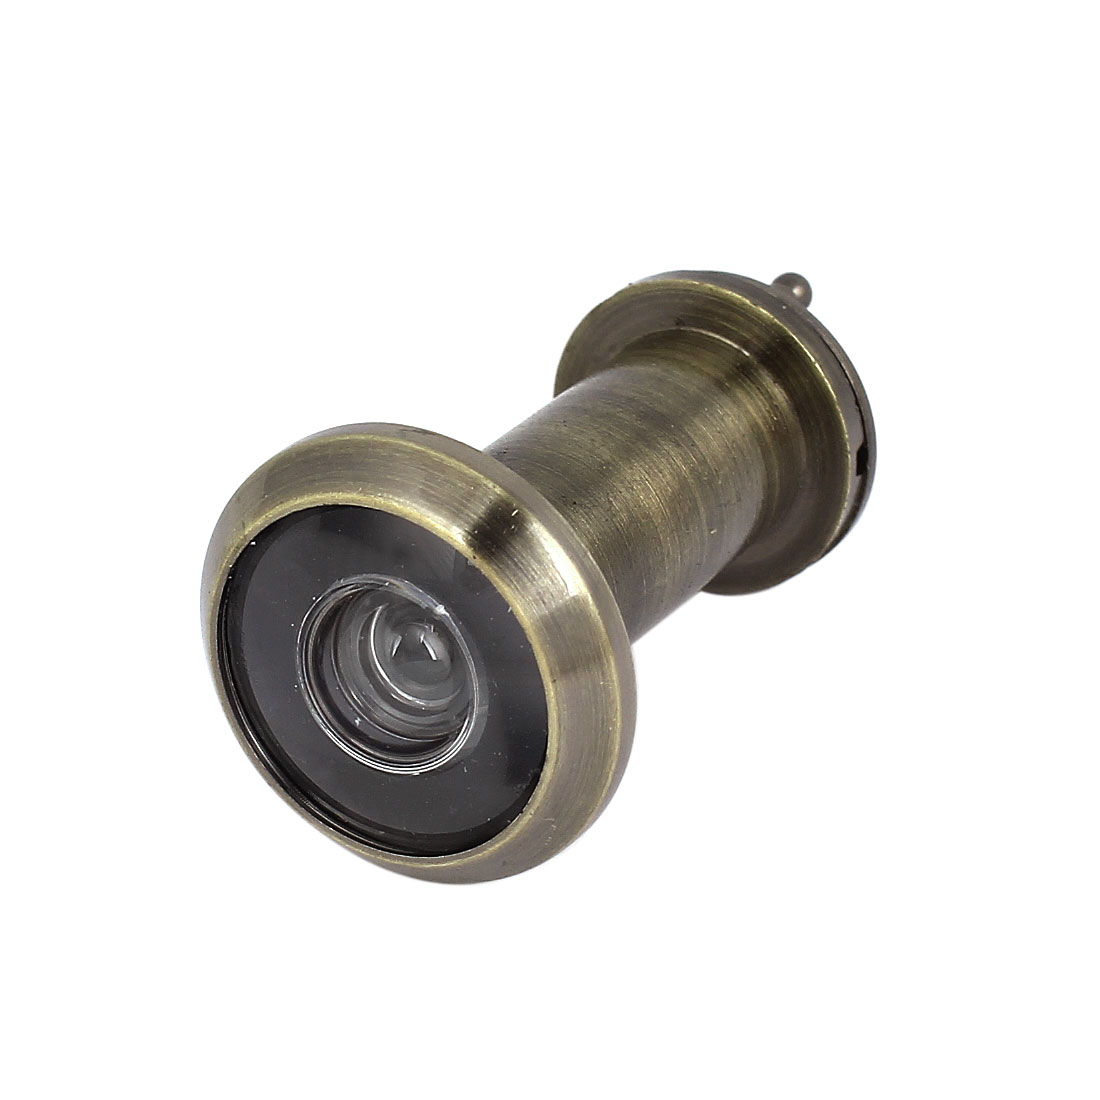 16mm Dia 200 Degree Wide Angle 35mm-52mm Thickness Door Viewer Peephole Bronze Tone